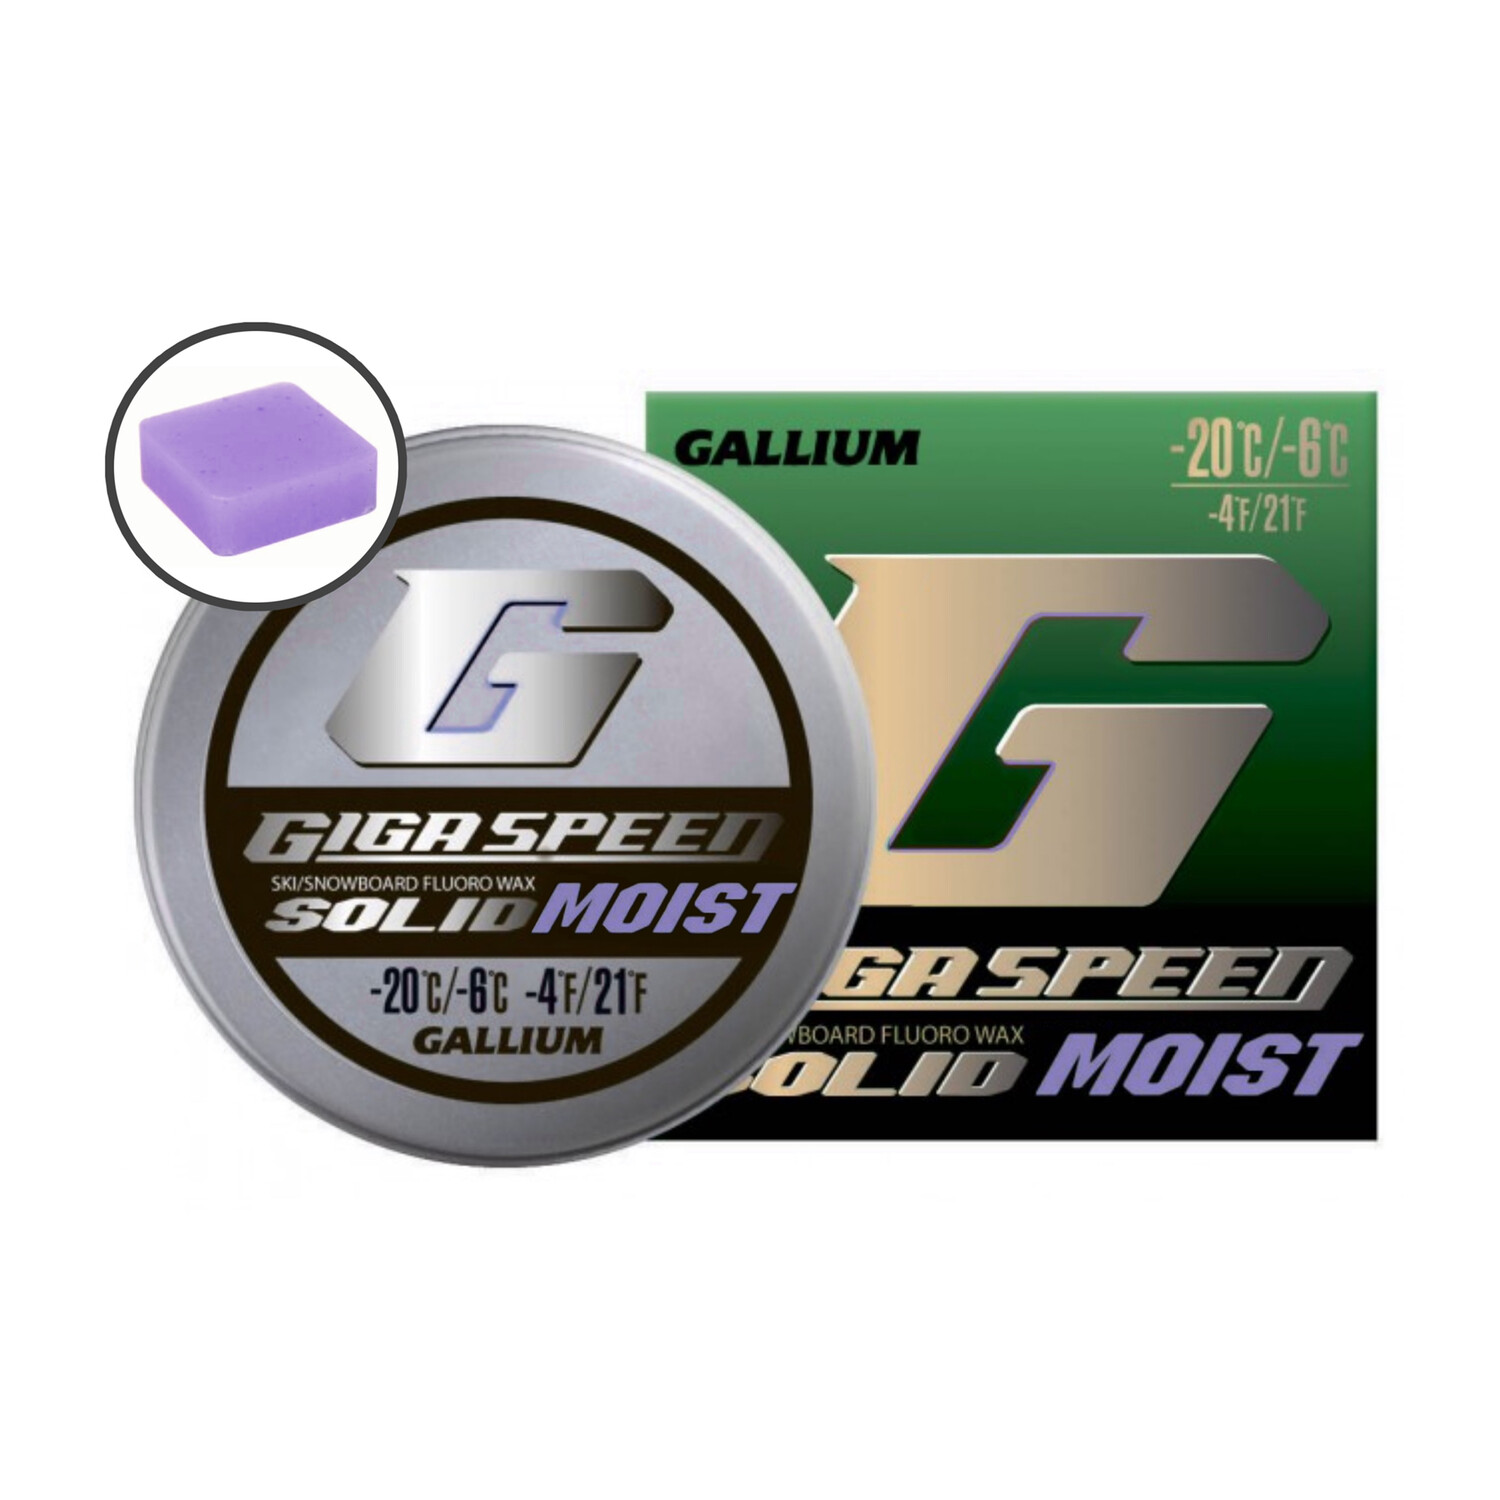 GIGA SPEED Solid MOIST